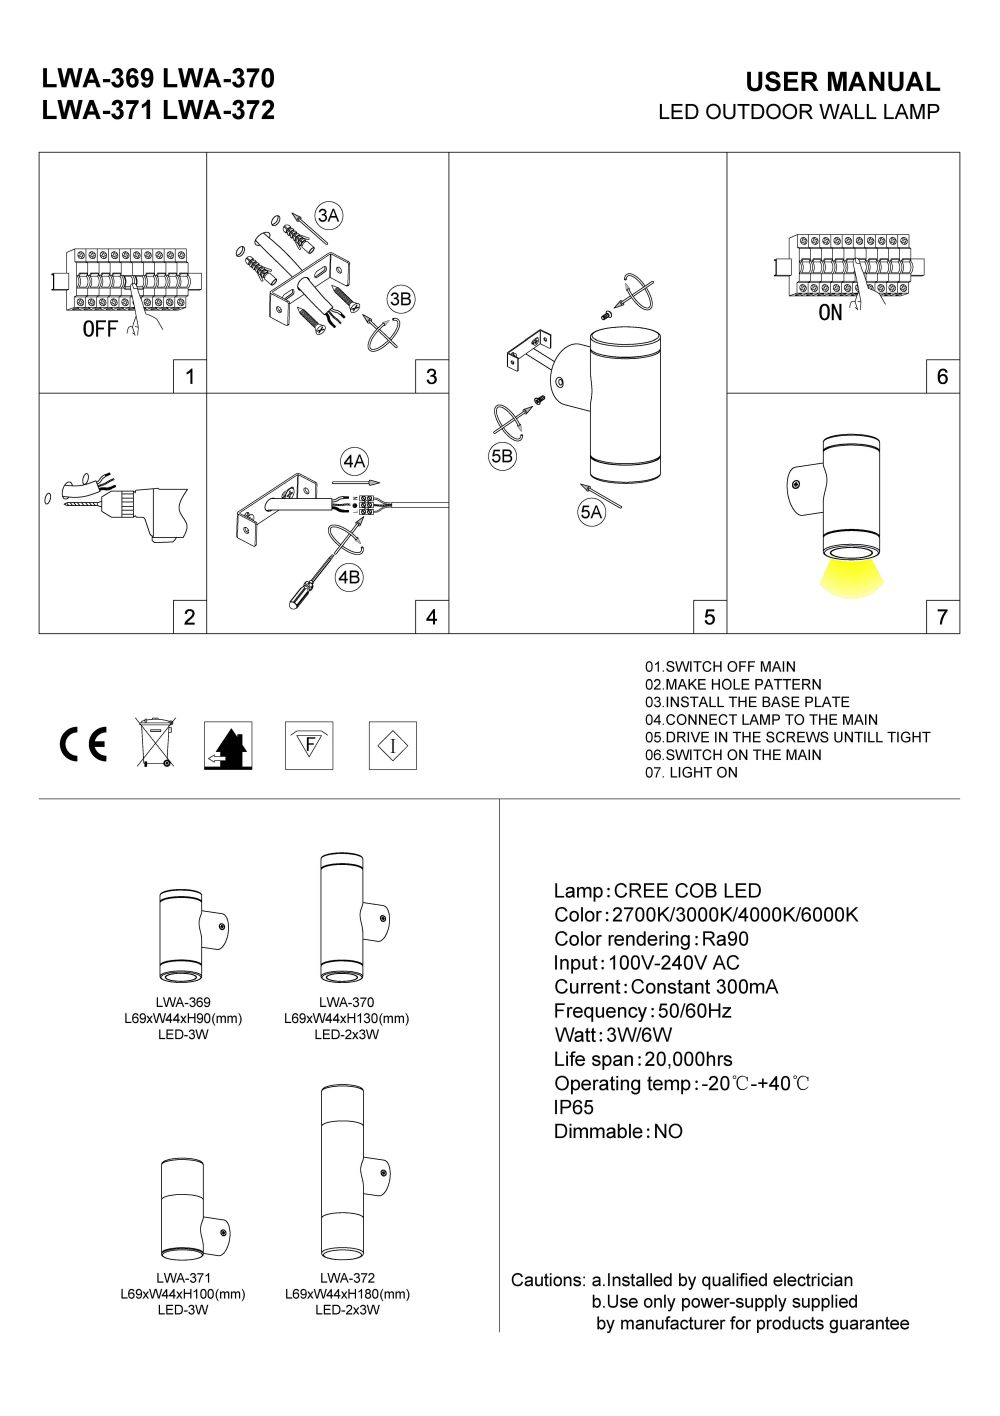 LWA-369 LWA-370 LWA-371 LWA-372 Outdoor LED wall light installation guide